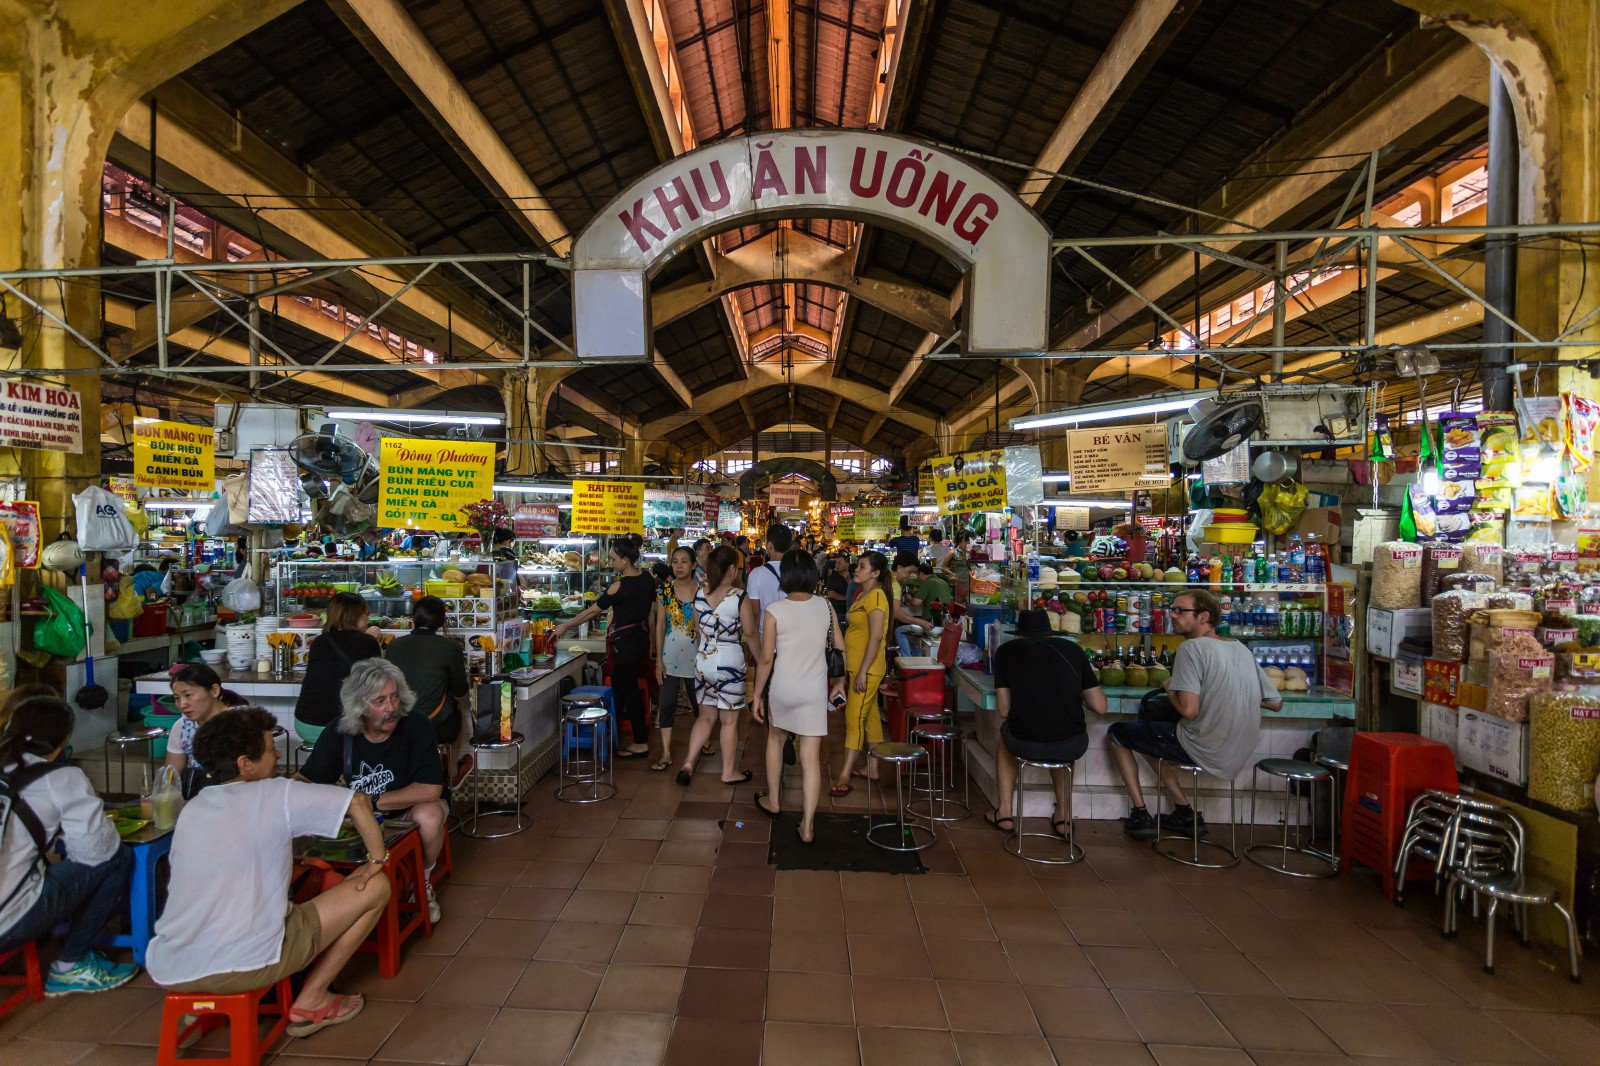 People in Ben Thanh market